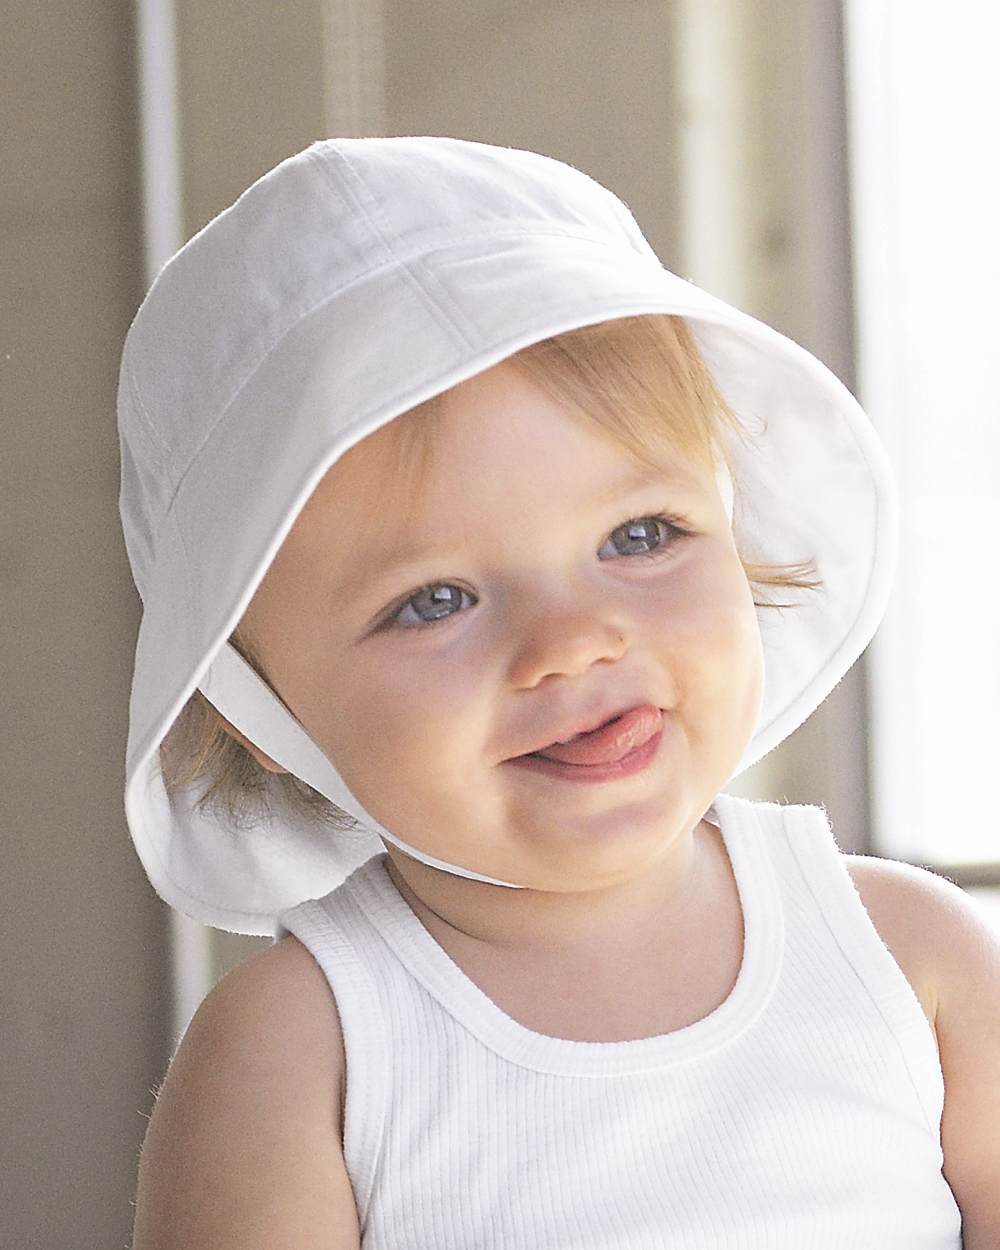 Baby Sun Hat and More Safety Tips to Follow – Carey Fashion